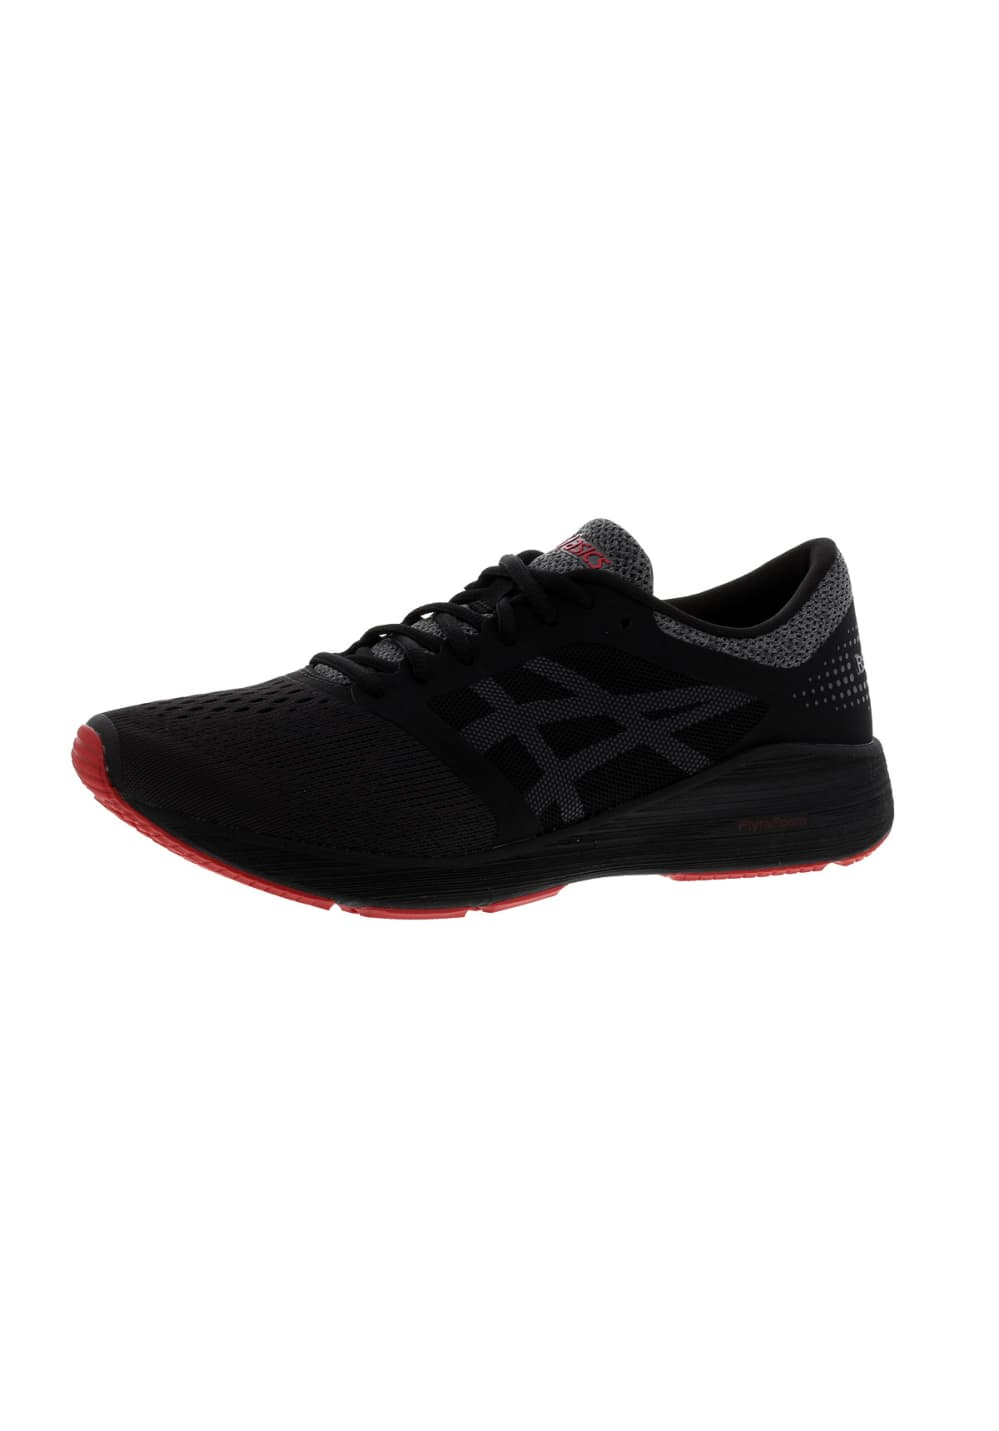 on sale 64acb df2c6 ASICS Roadhawk FF - Running shoes for Men - Black